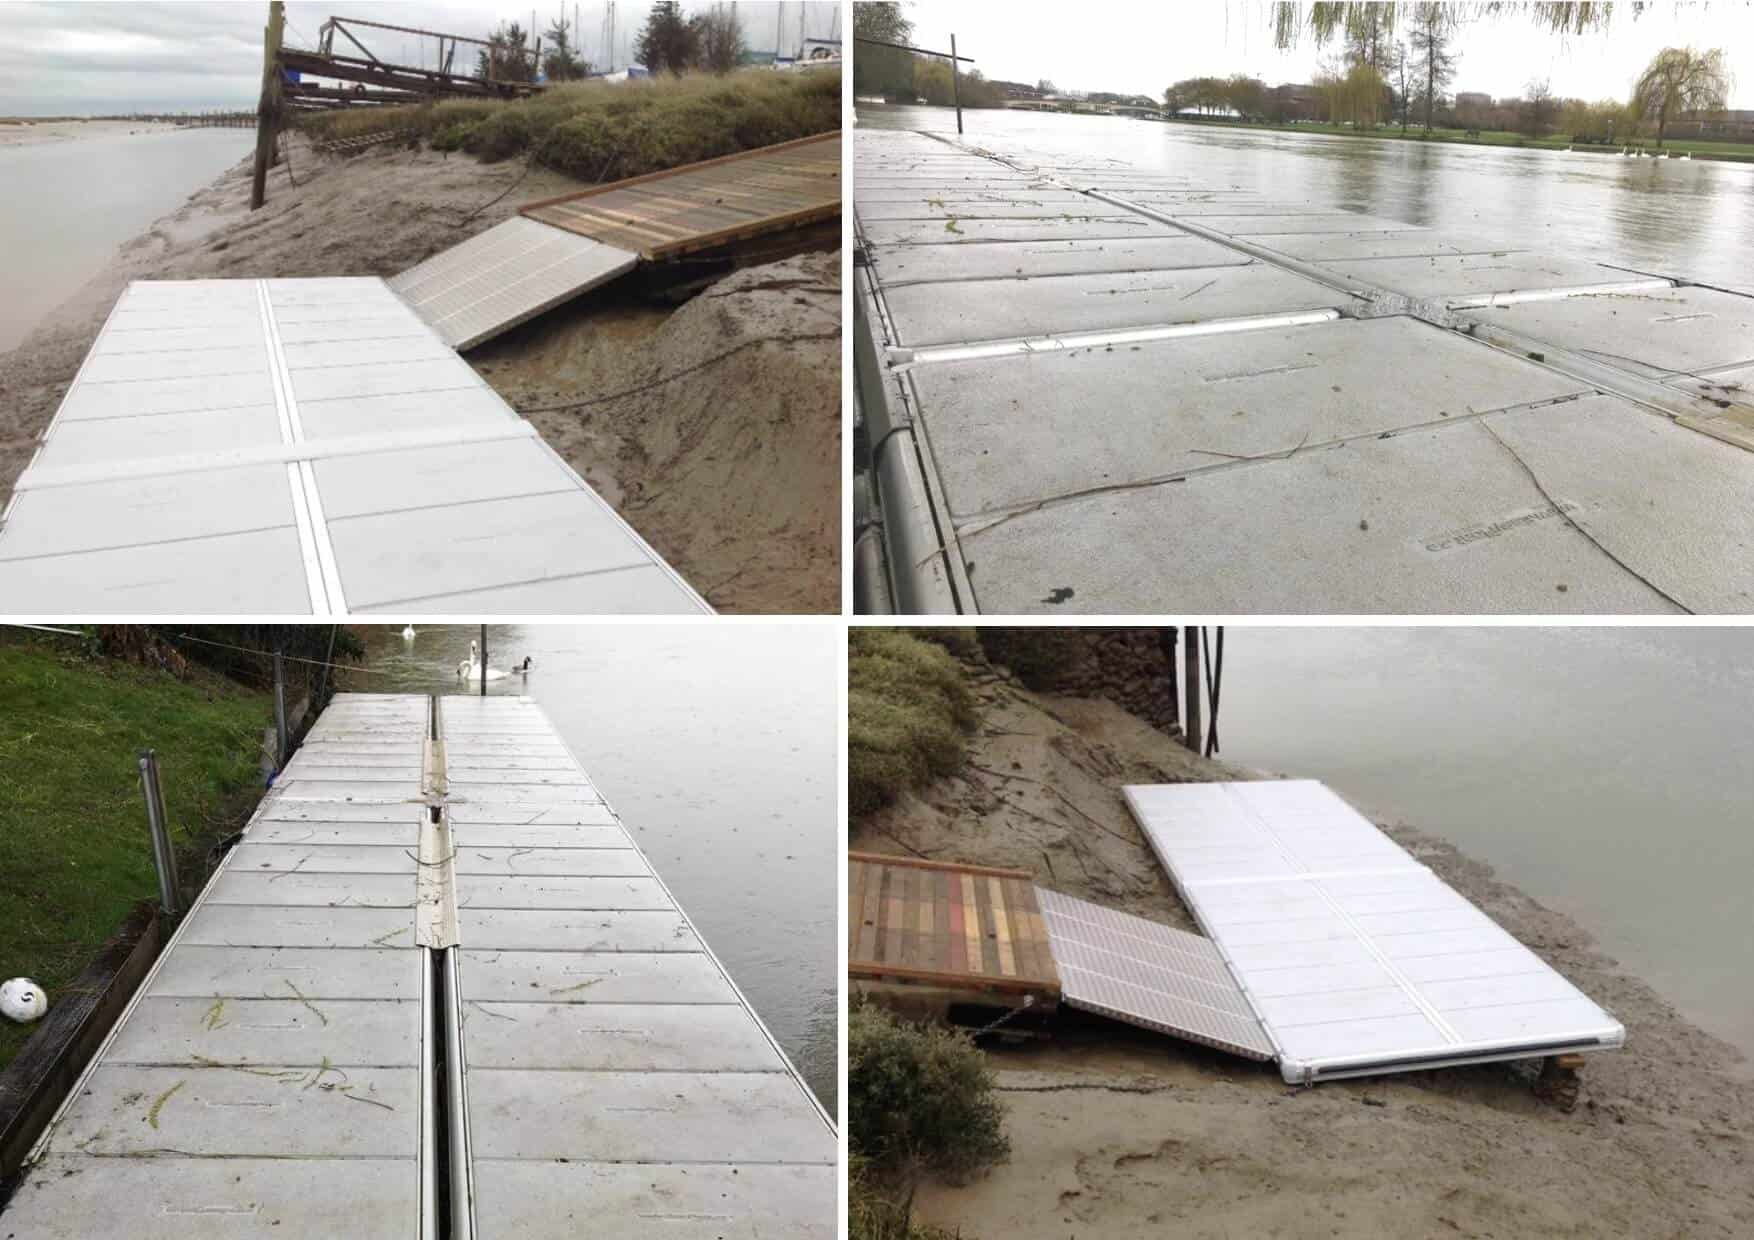 Easy Float pontoon new product